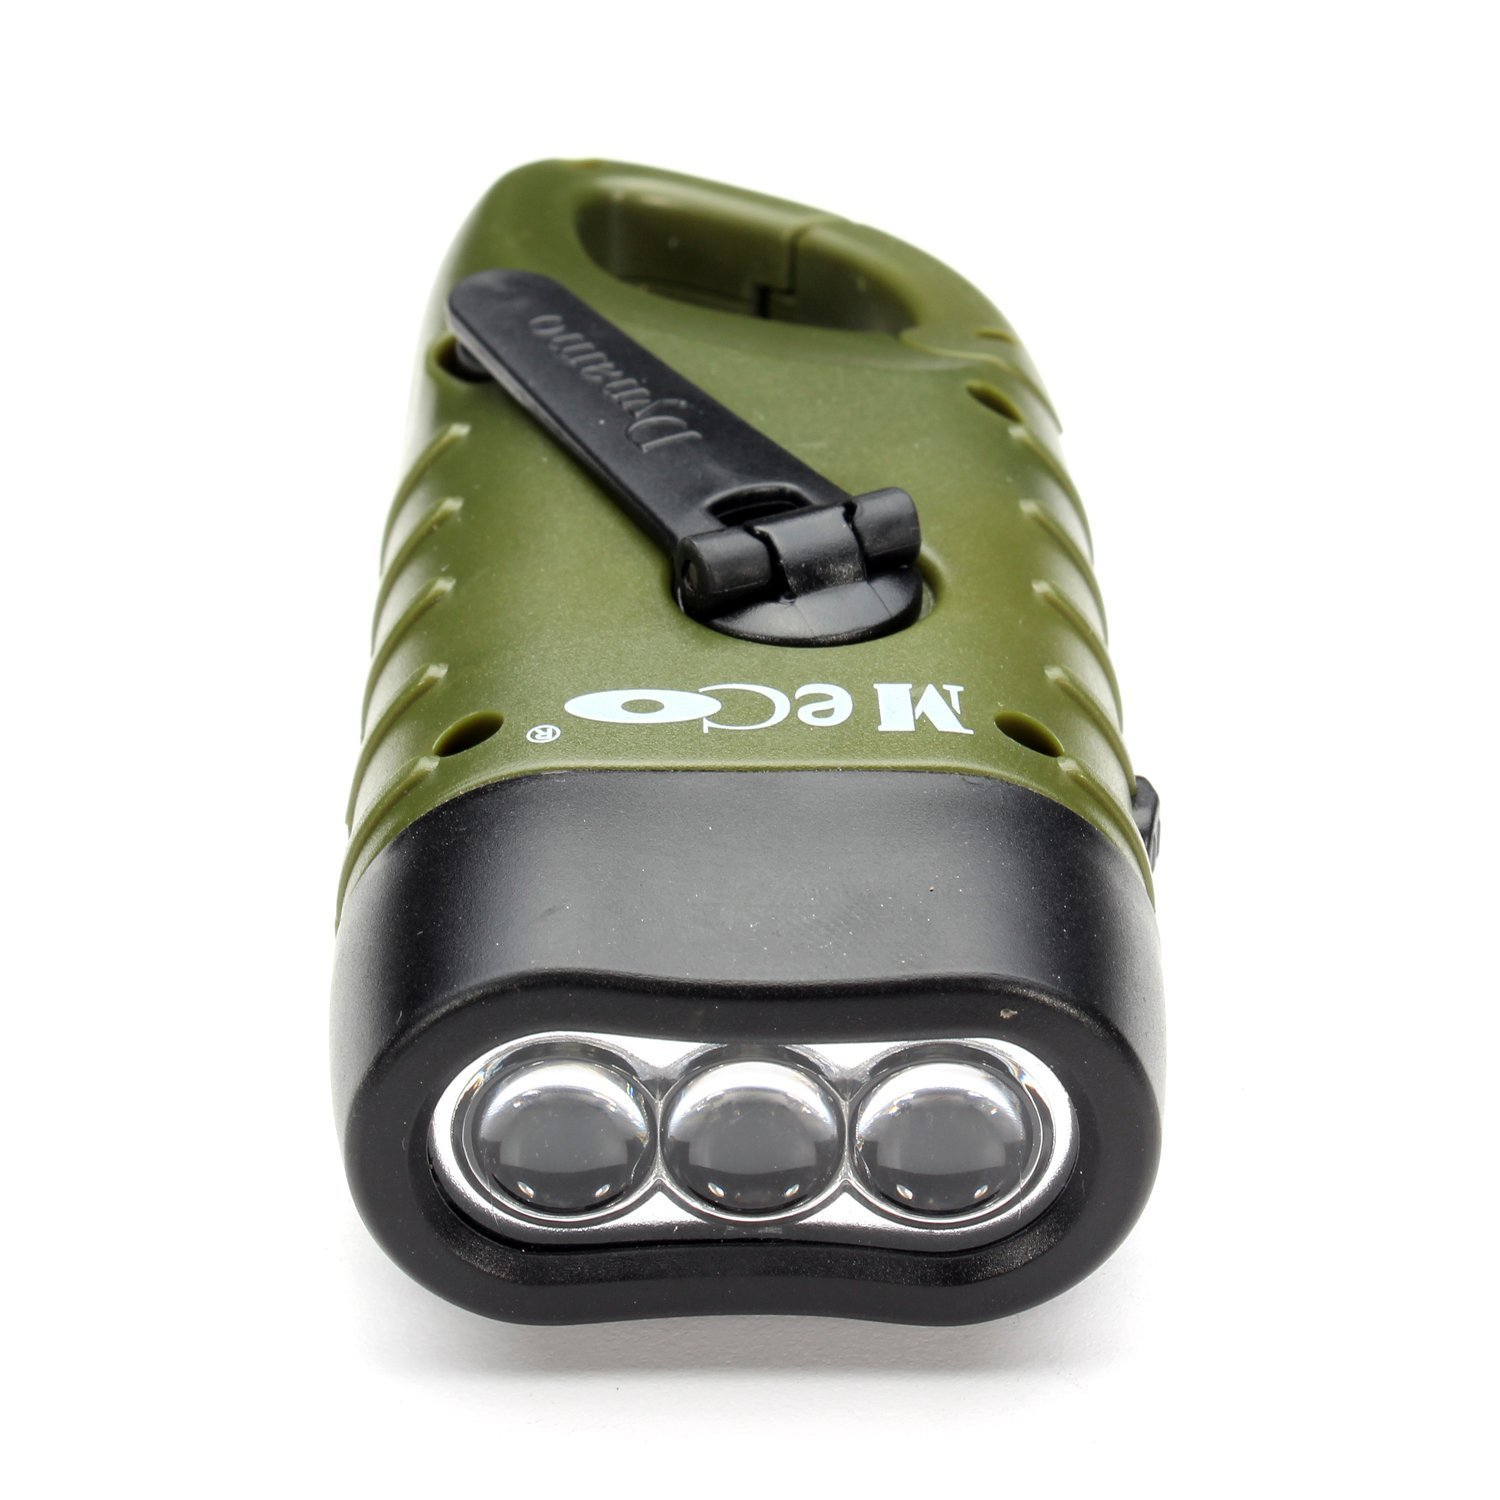 MECO Hand Cranking Solar Powered Rechargeable Flashlight Emergency LED Flashlight Carbiner Dynamo Quick Snap Clip Backpack Flashlight Torch Weather Ready for Camping Outdoor Climbing Hiking ME-HCF